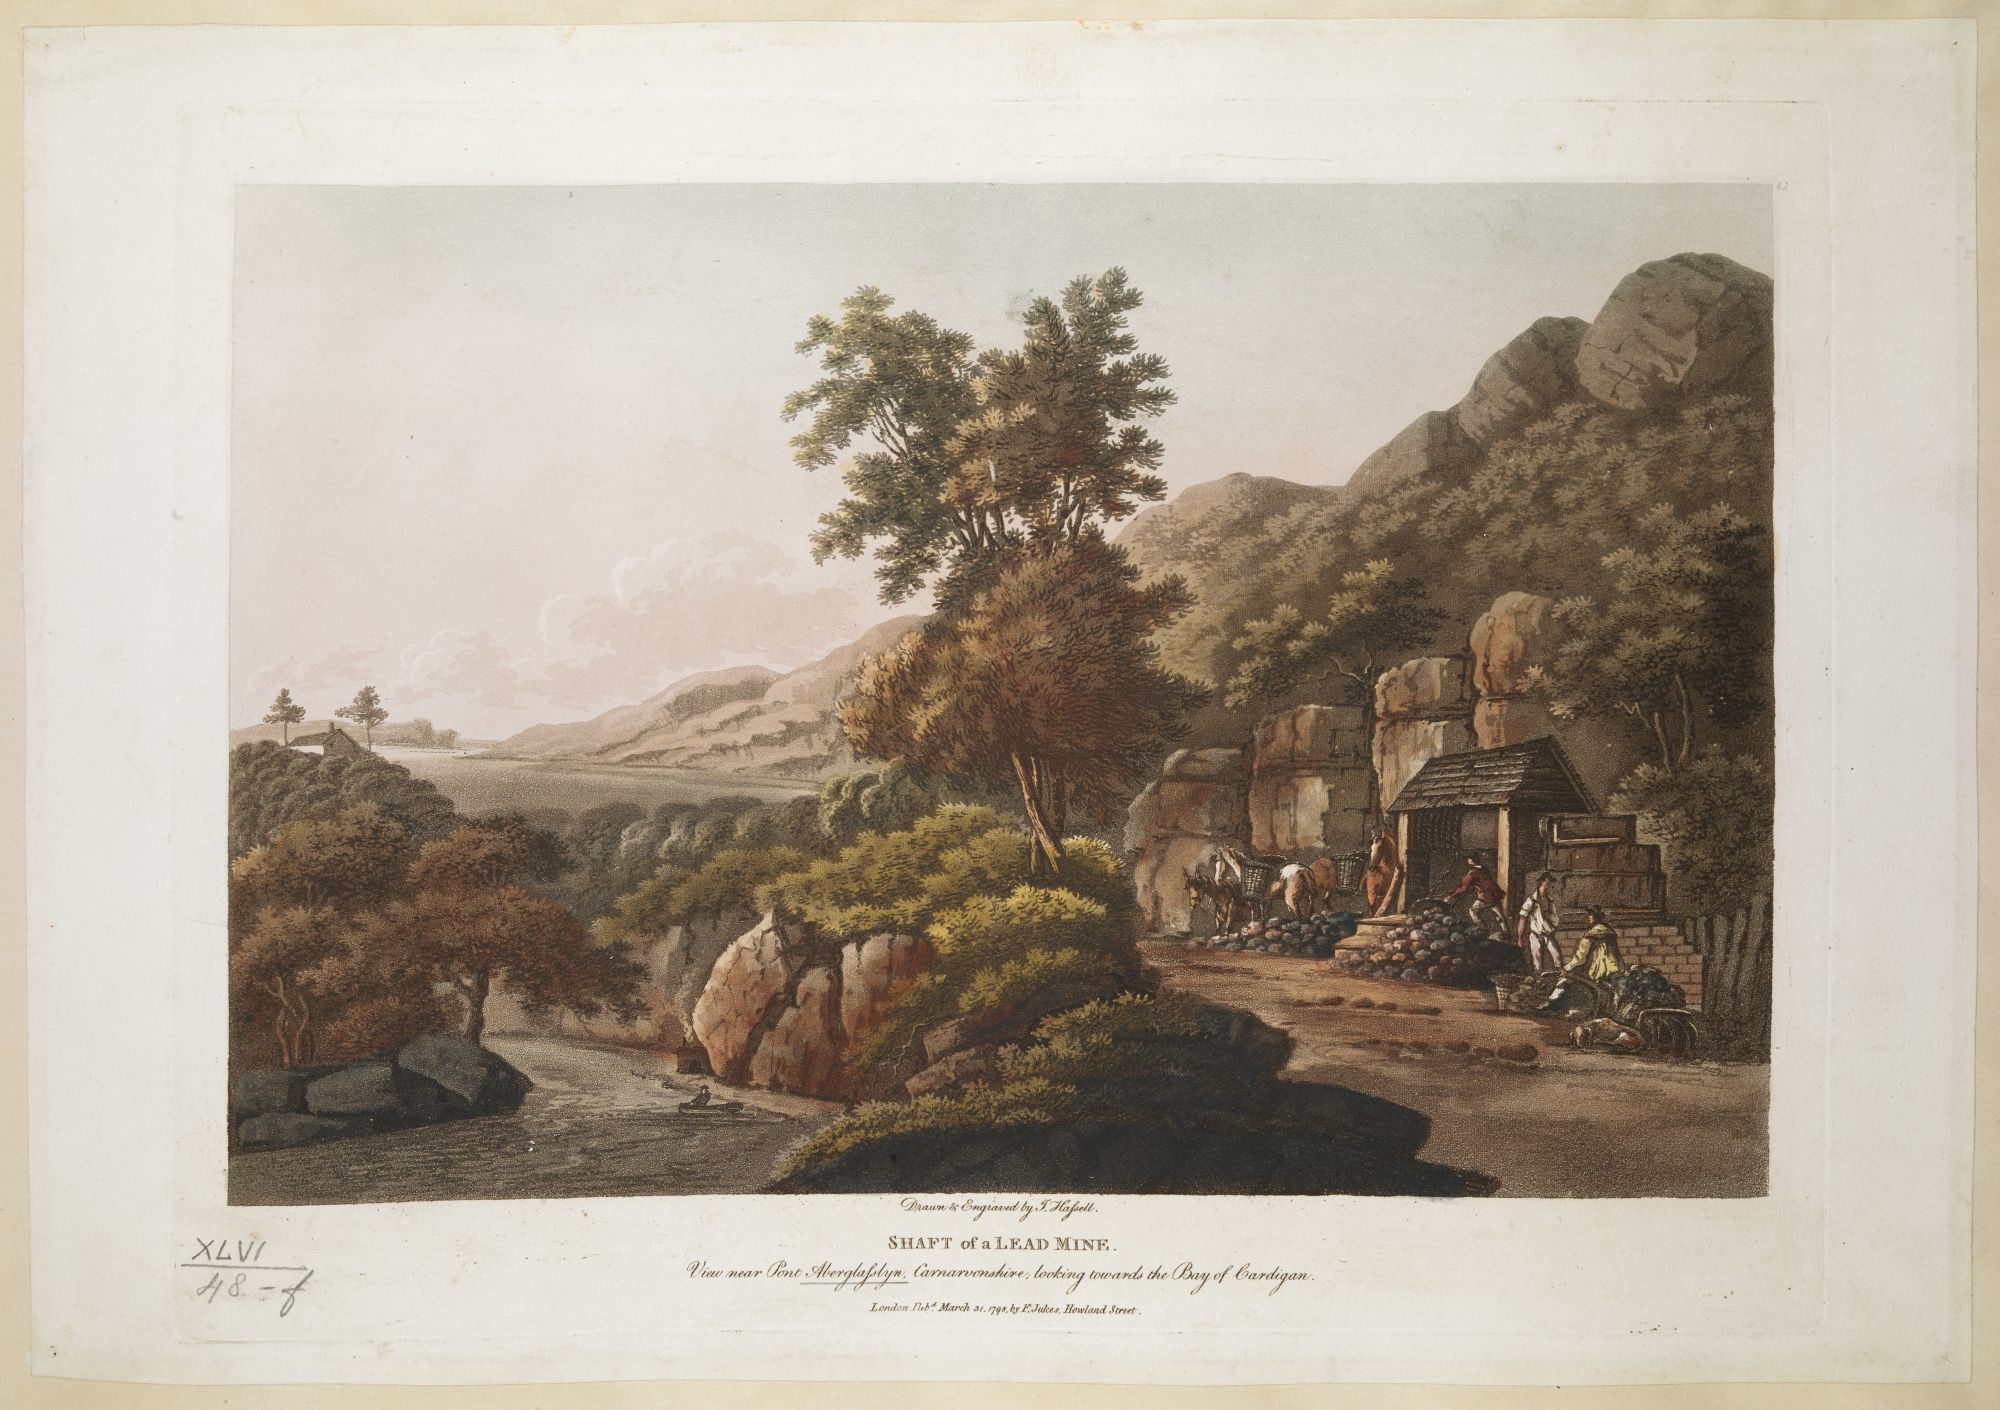 Shaft of a Lead Mine. View near Pont Aberglasslyn, Carnarvonshire, looking towards the Bay of Cardigan, by John Hassell.